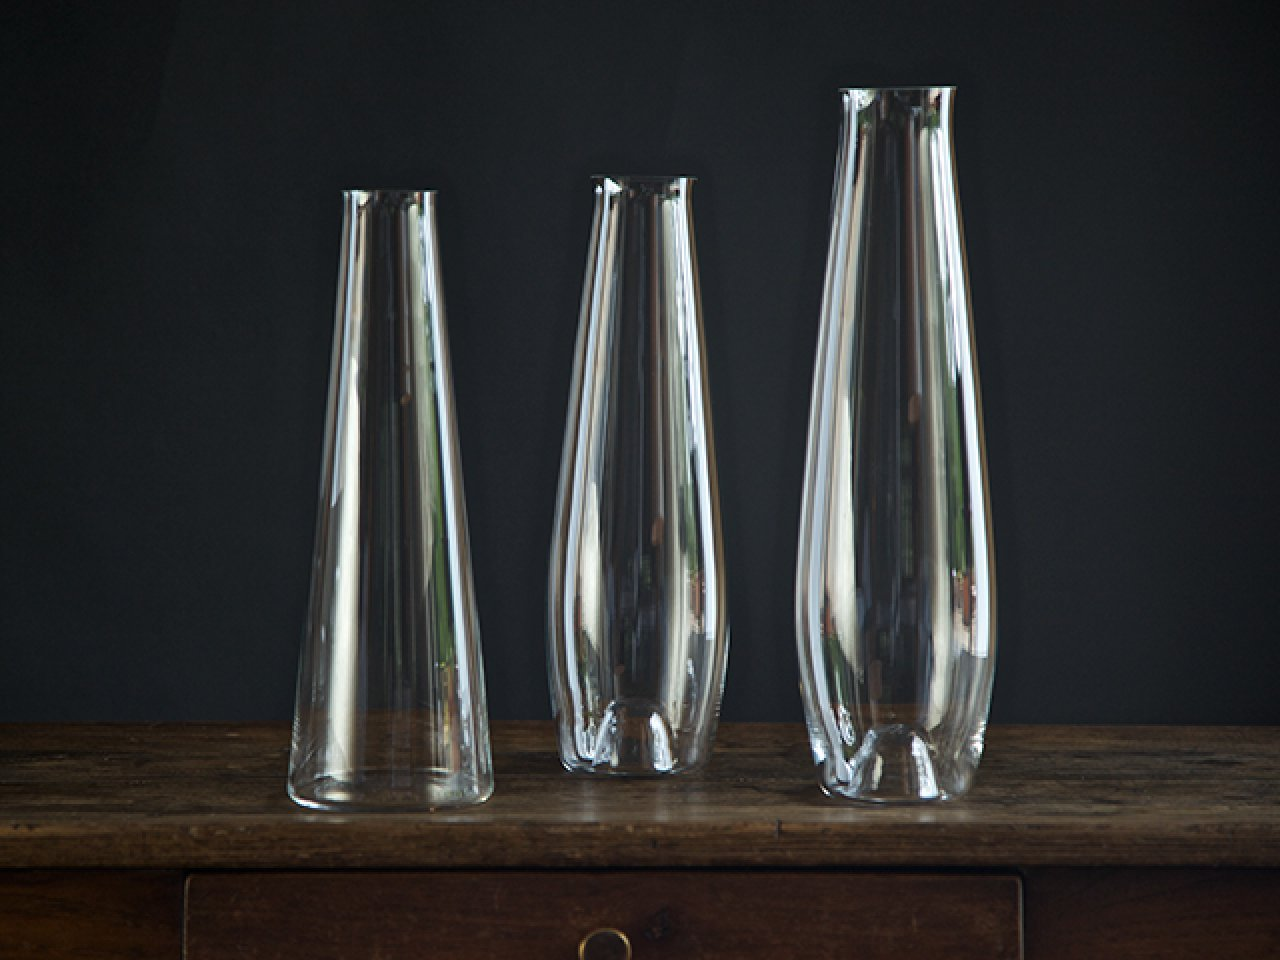 Crystal Wine Decanters (Blue Hill Exclusive) $285.00 - $345.00